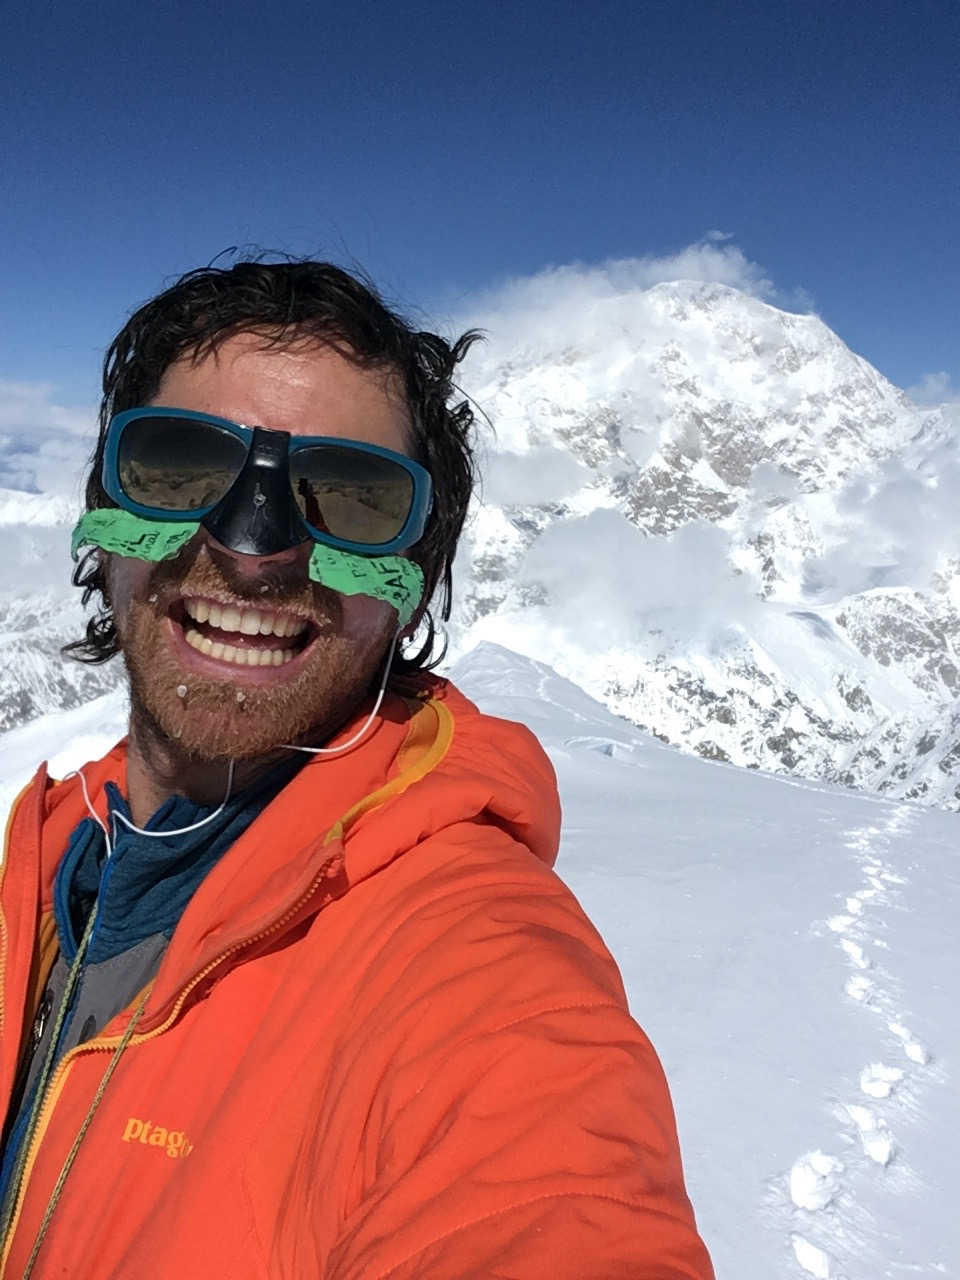 Self-portrait on the summit of Begguya (14,573'). Denali (20,310') is in the background. [Photo] Colin Haley